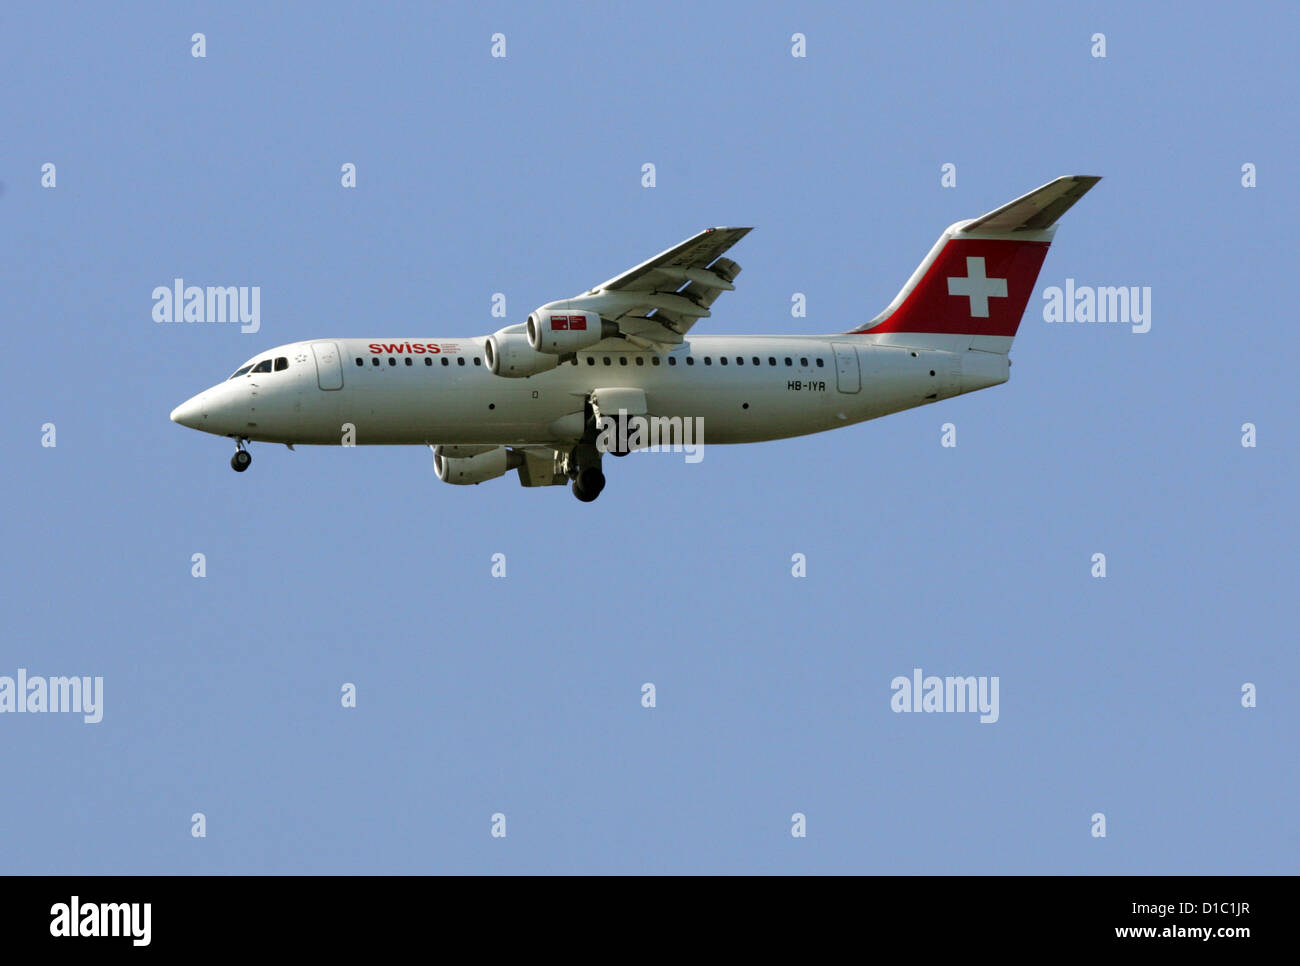 Hanover, Germany, the airline Swiss machine in the air - Stock Image